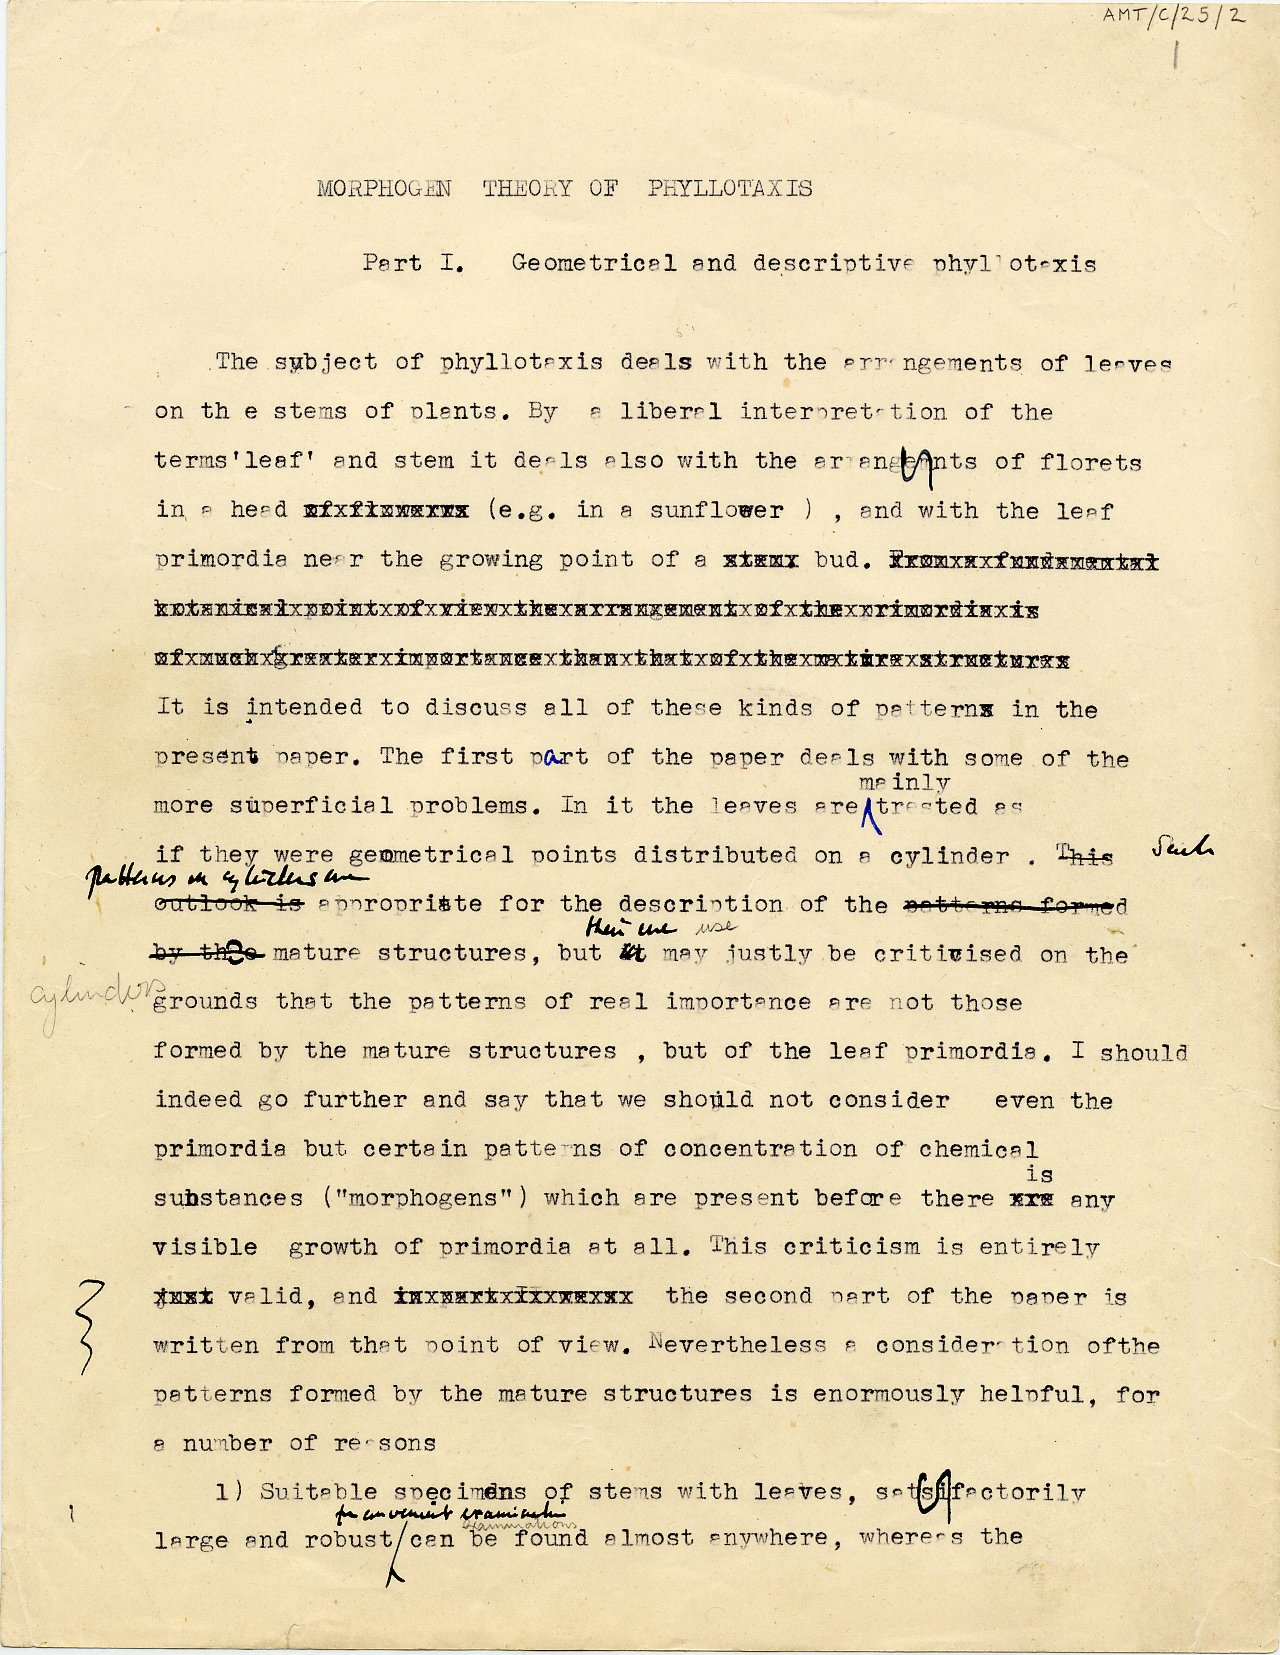 First page of Turing's 1951 paper on morphogenetic theory. [AMT C/25]